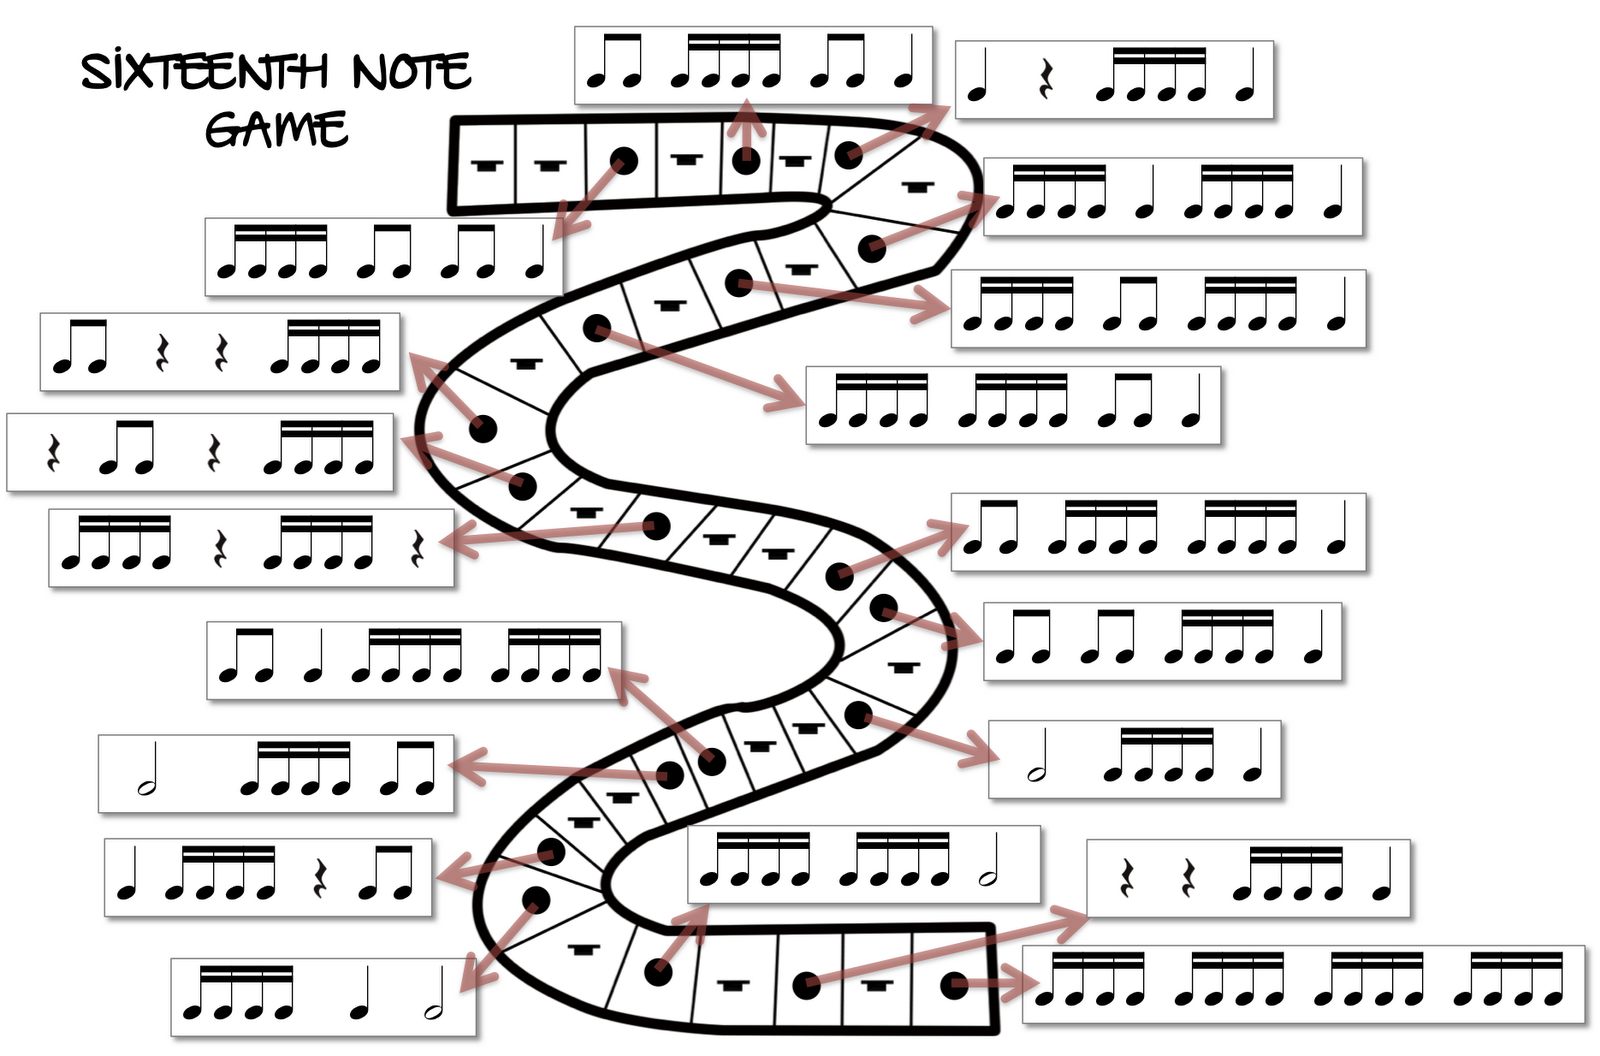 Sixteenth Note Game